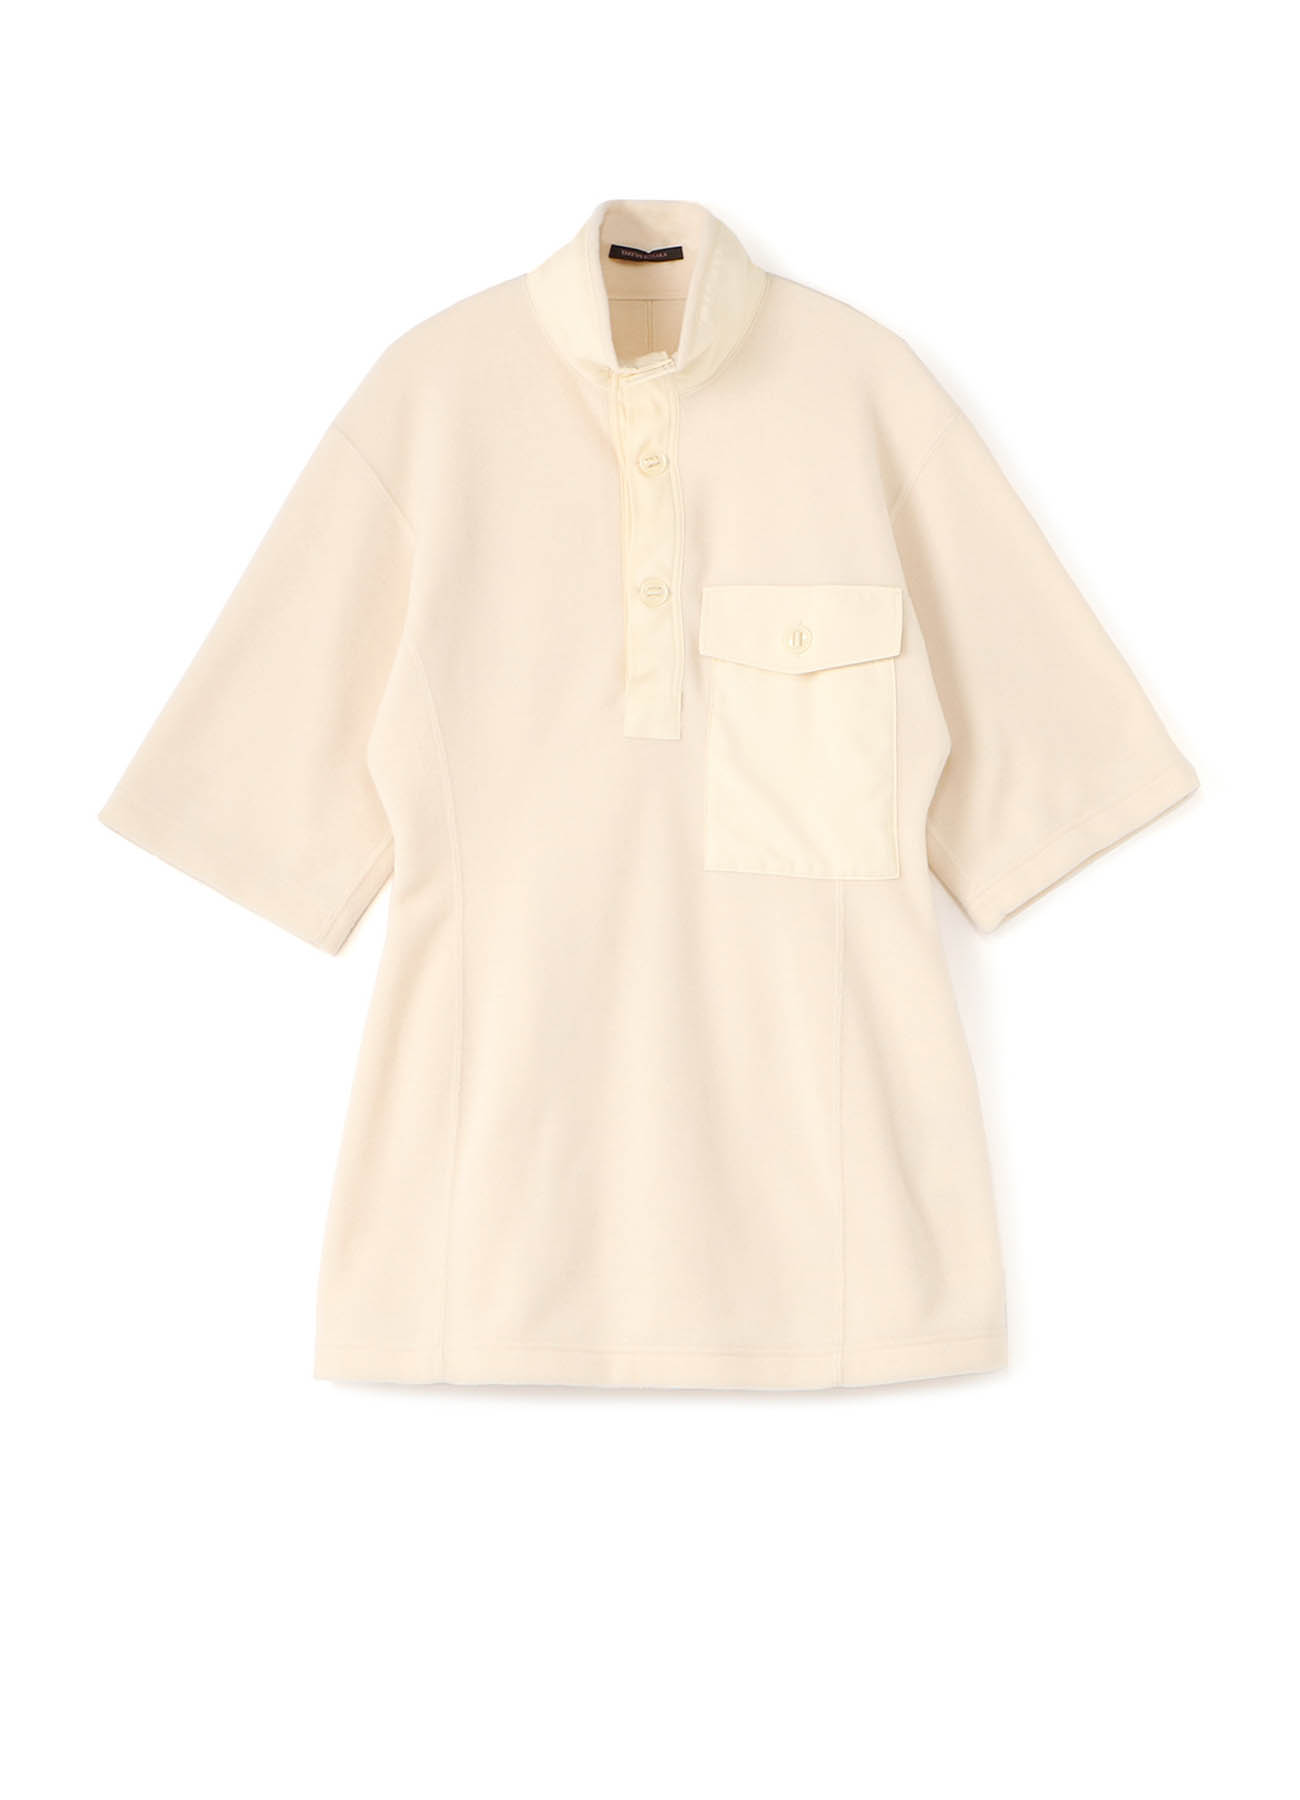 Y'sPINK TOSCANA FLEECE HIGHT-NECKED COLLAR POLO SHIRT